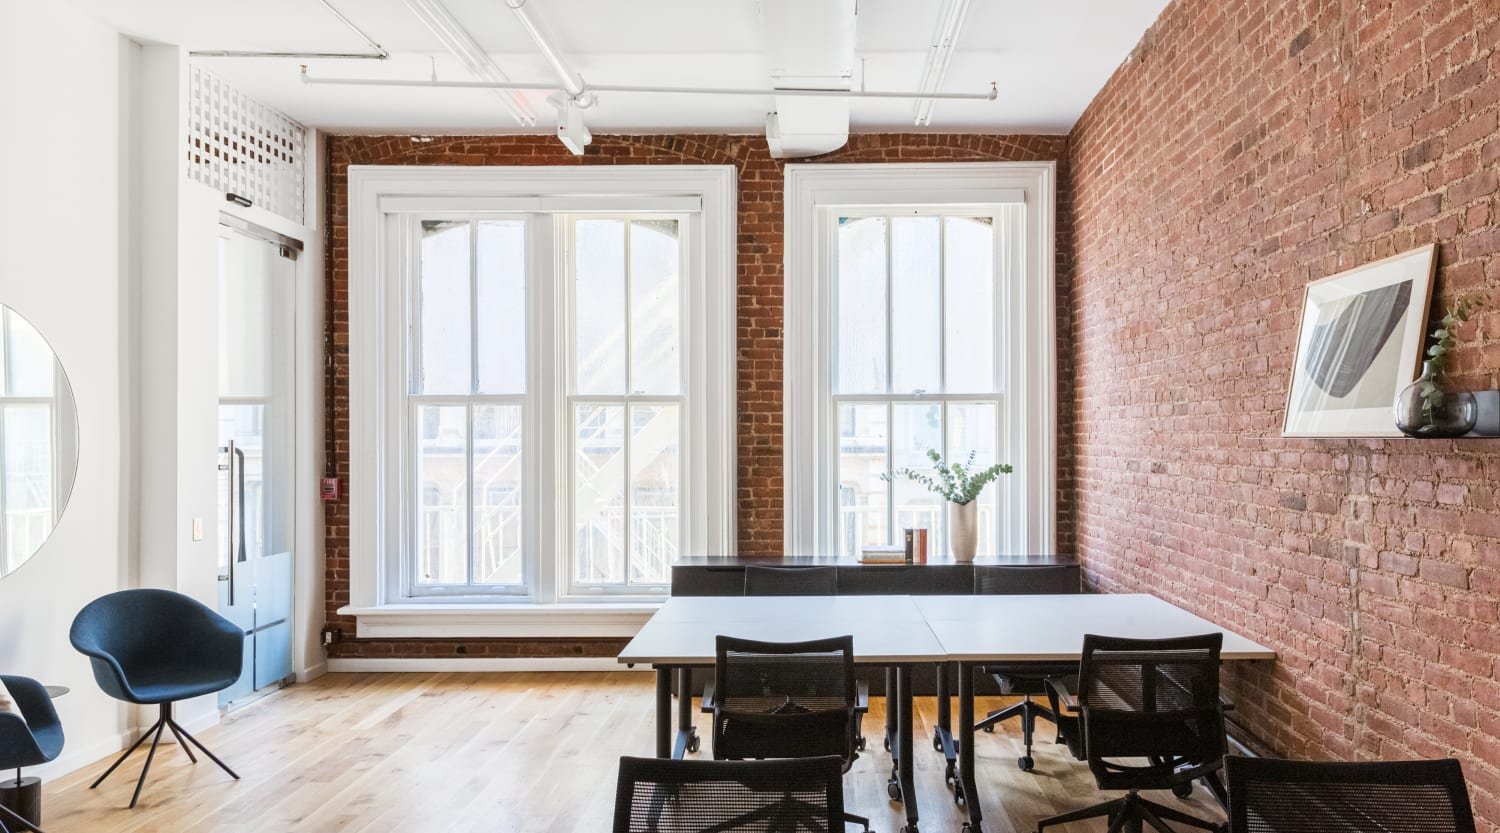 460 Broome Street, 3rd Floor, Suite 300